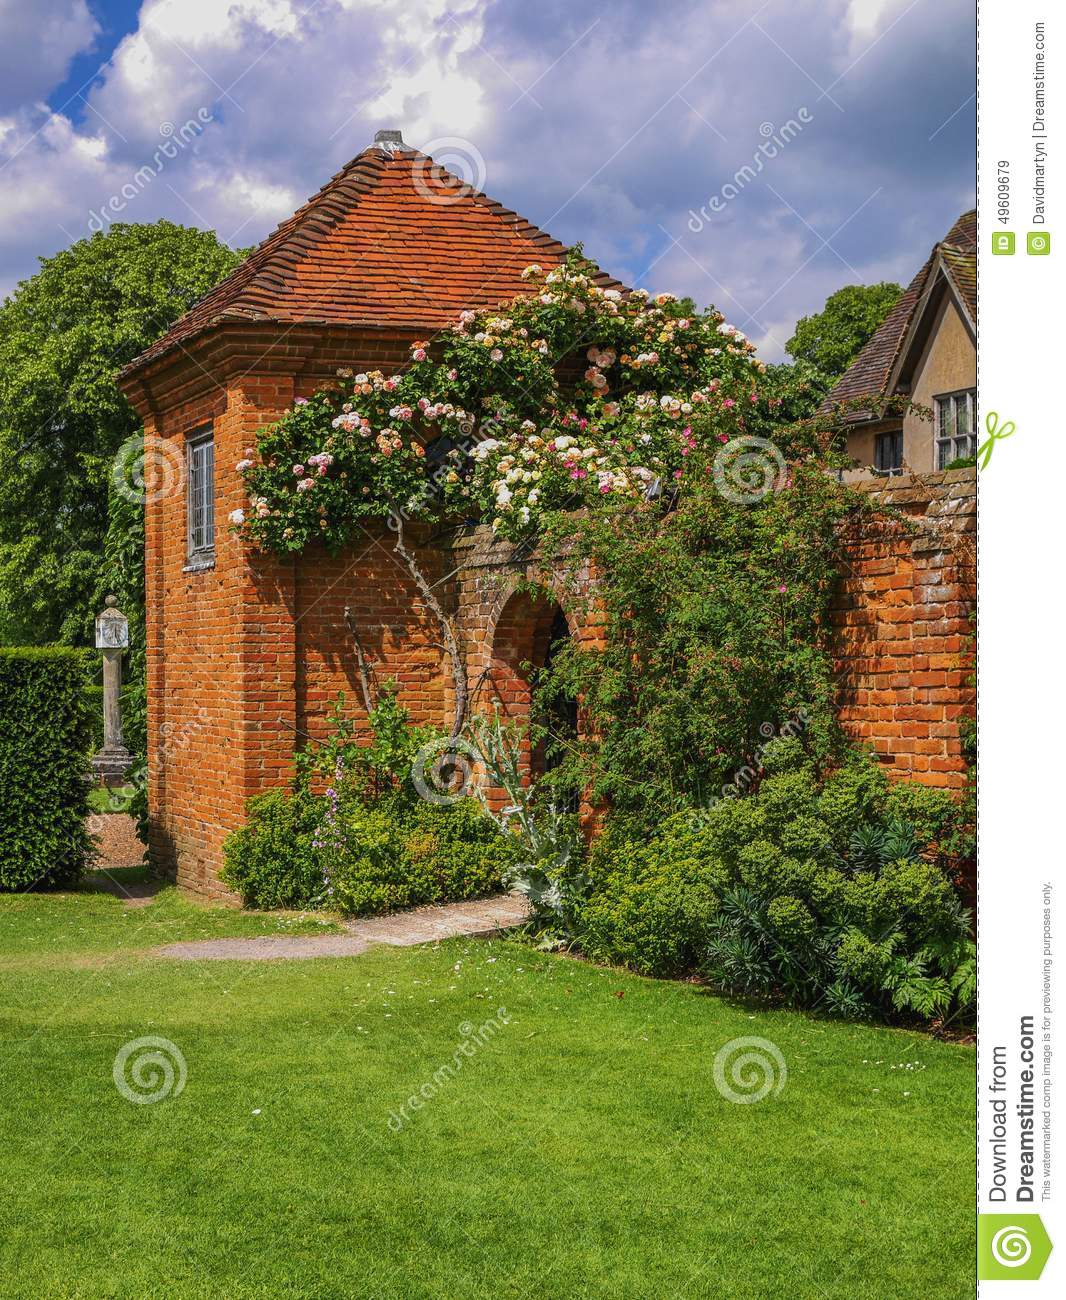 Garden stock image. Image of country, green, summers - 49609679